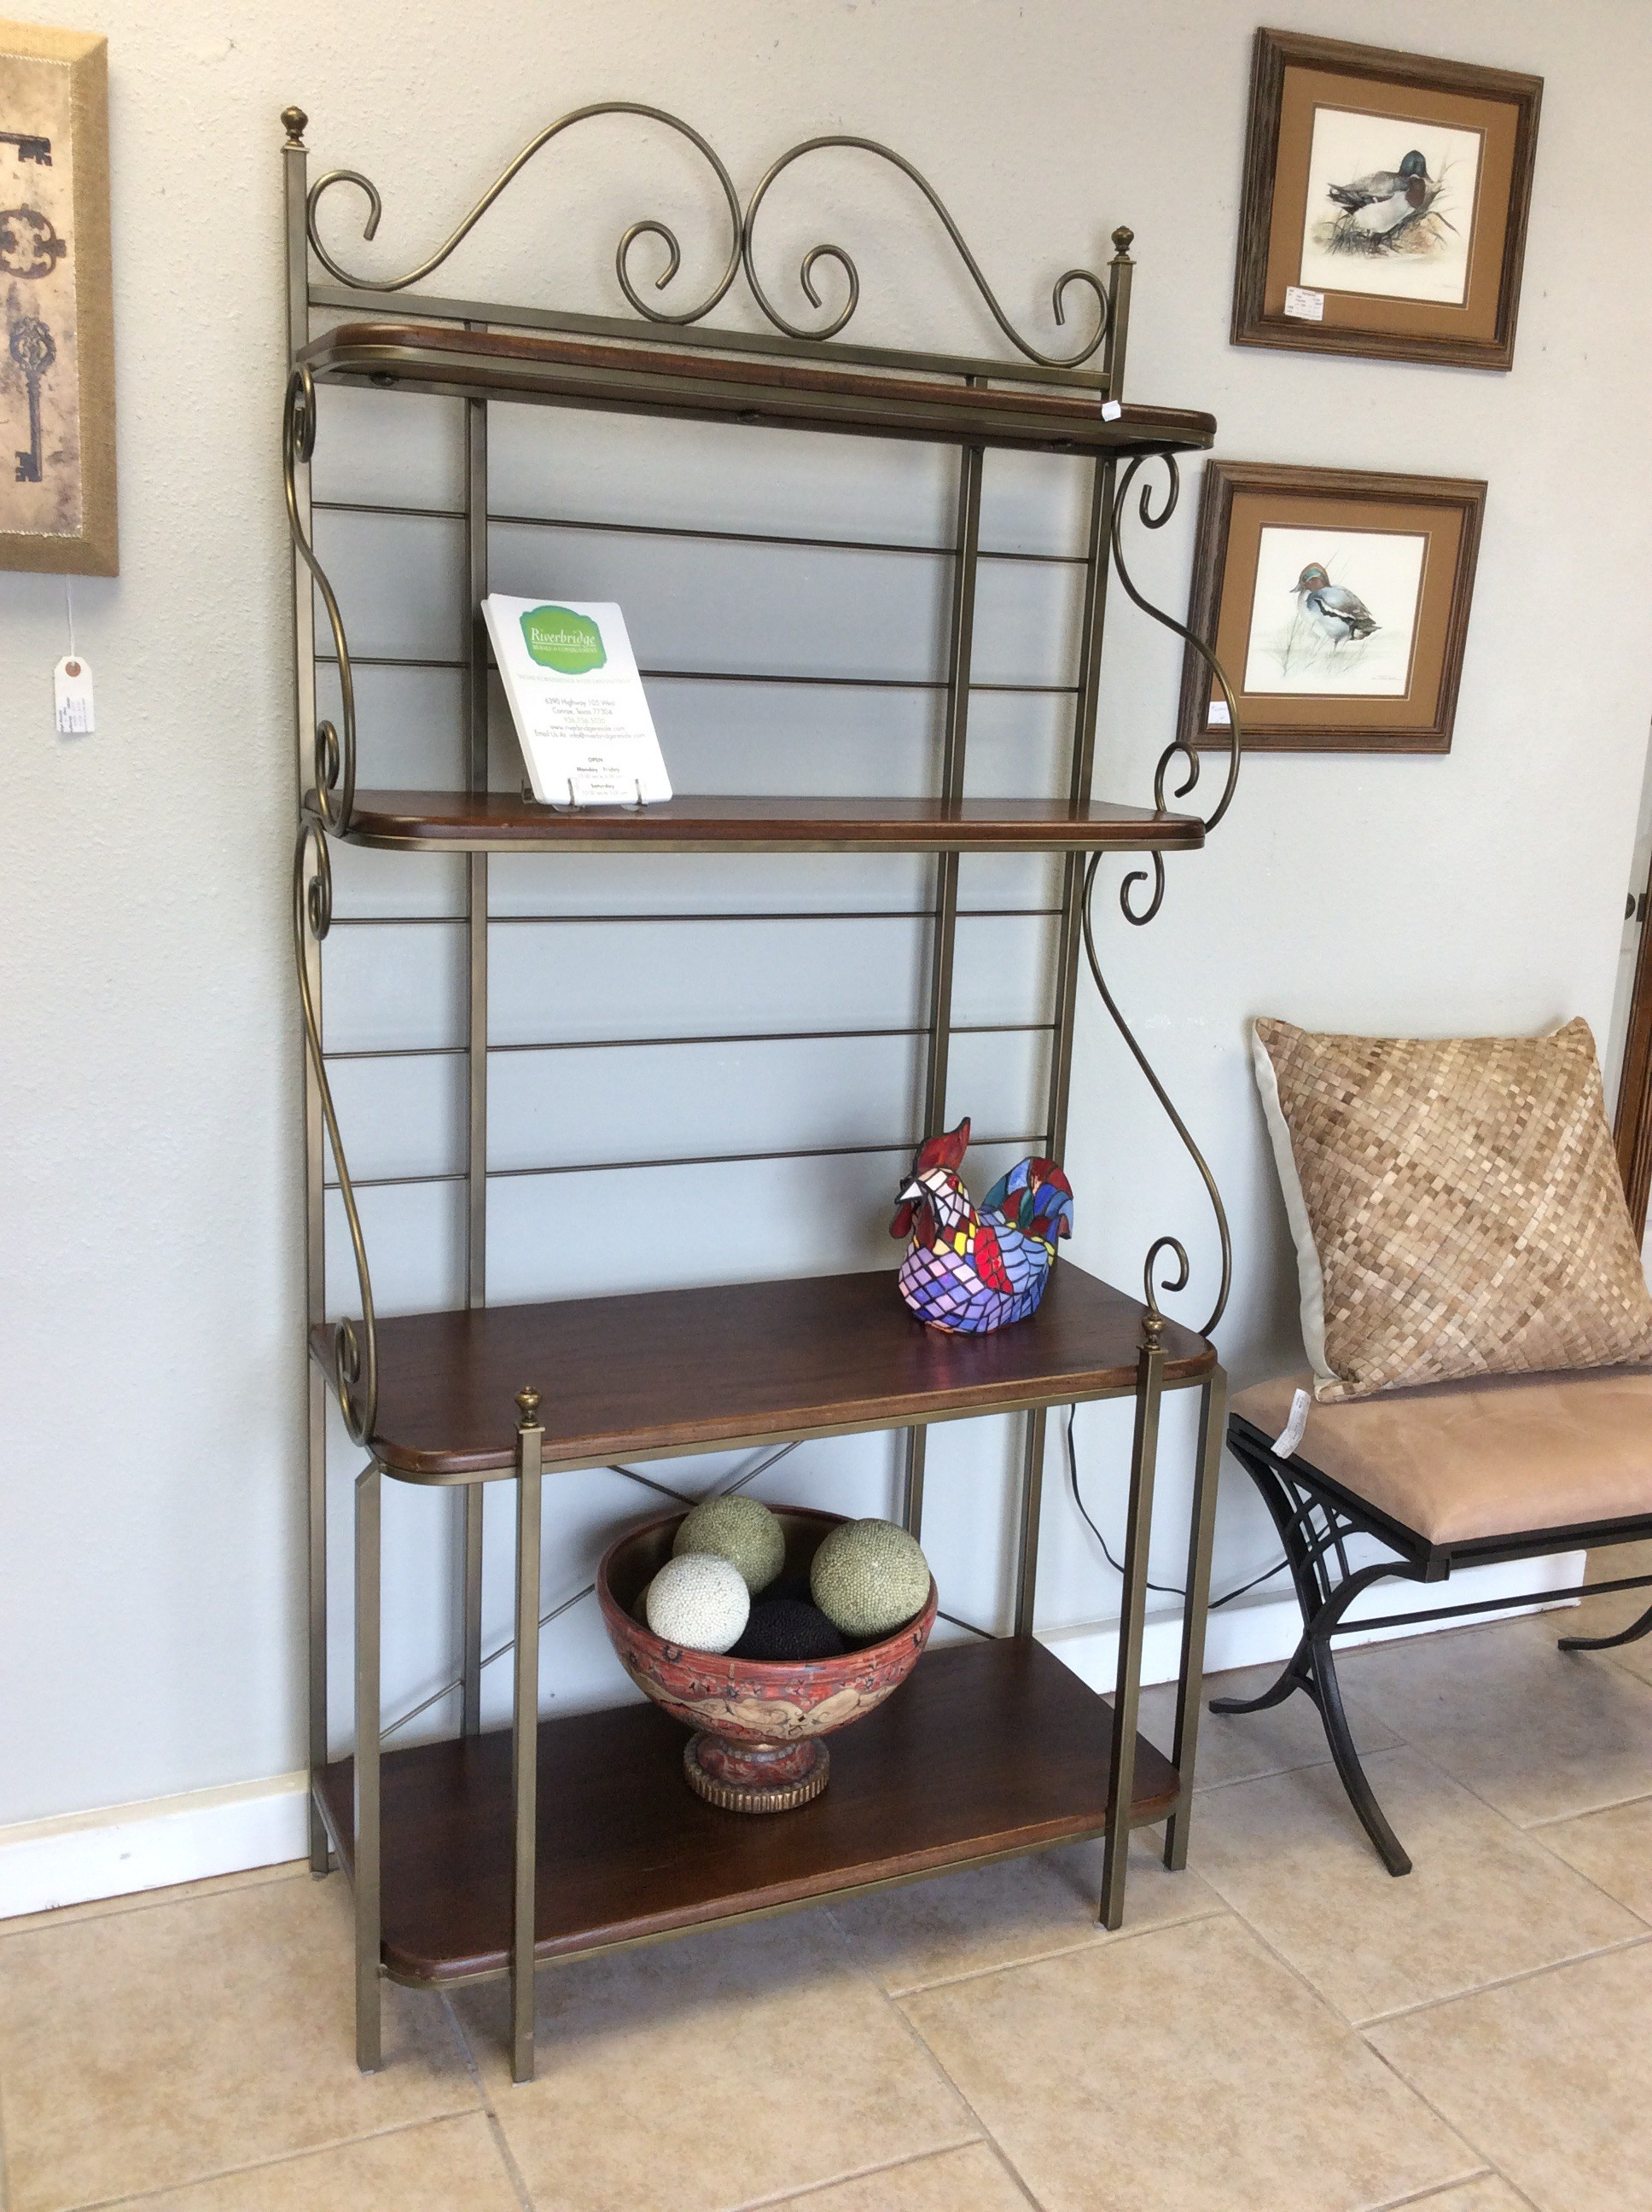 This baker's rack would be the perfect addition to your home! Simple and sweet, it's a lovely combination of metal and wood. The wood shelves have a gorgeous walnut finish and are lightly distressed. The metal frame is a burnished, slightly antiqued color giving it a vintagy look. Not a baker? Not a problem! This is highly functional and could be used for so many things only limited by your imagination. It's also priced well, come in soon and take a look!